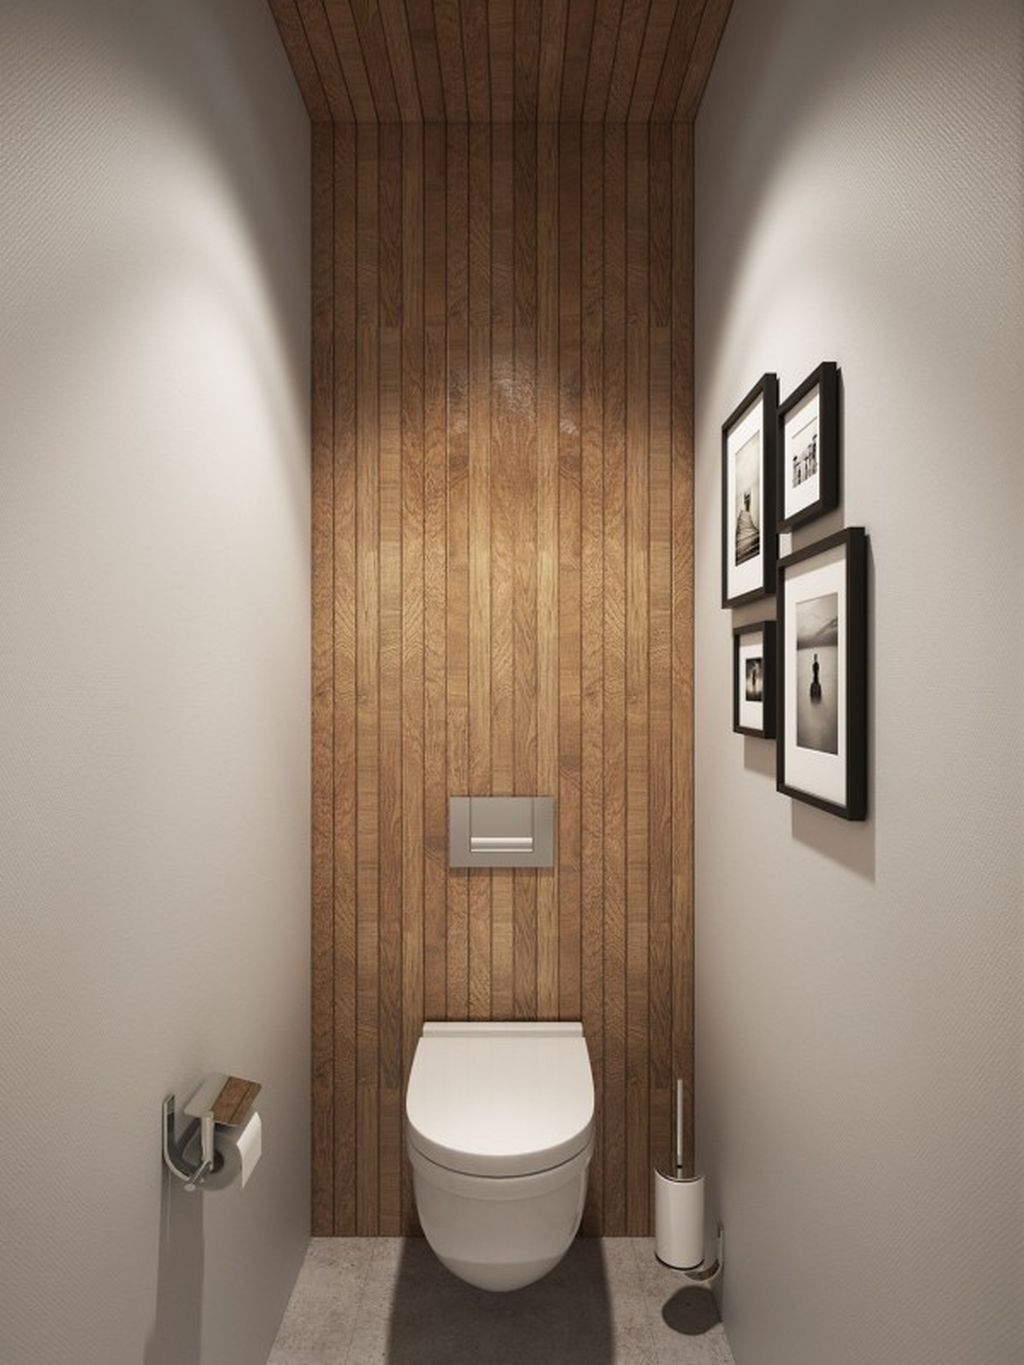 60 Small Modern Industrial Apartment Decoration Ideas Http Seragidecor Com 60 Small Modern Industrial Apart Bathroom Design Small Toilet Design Small Toilet